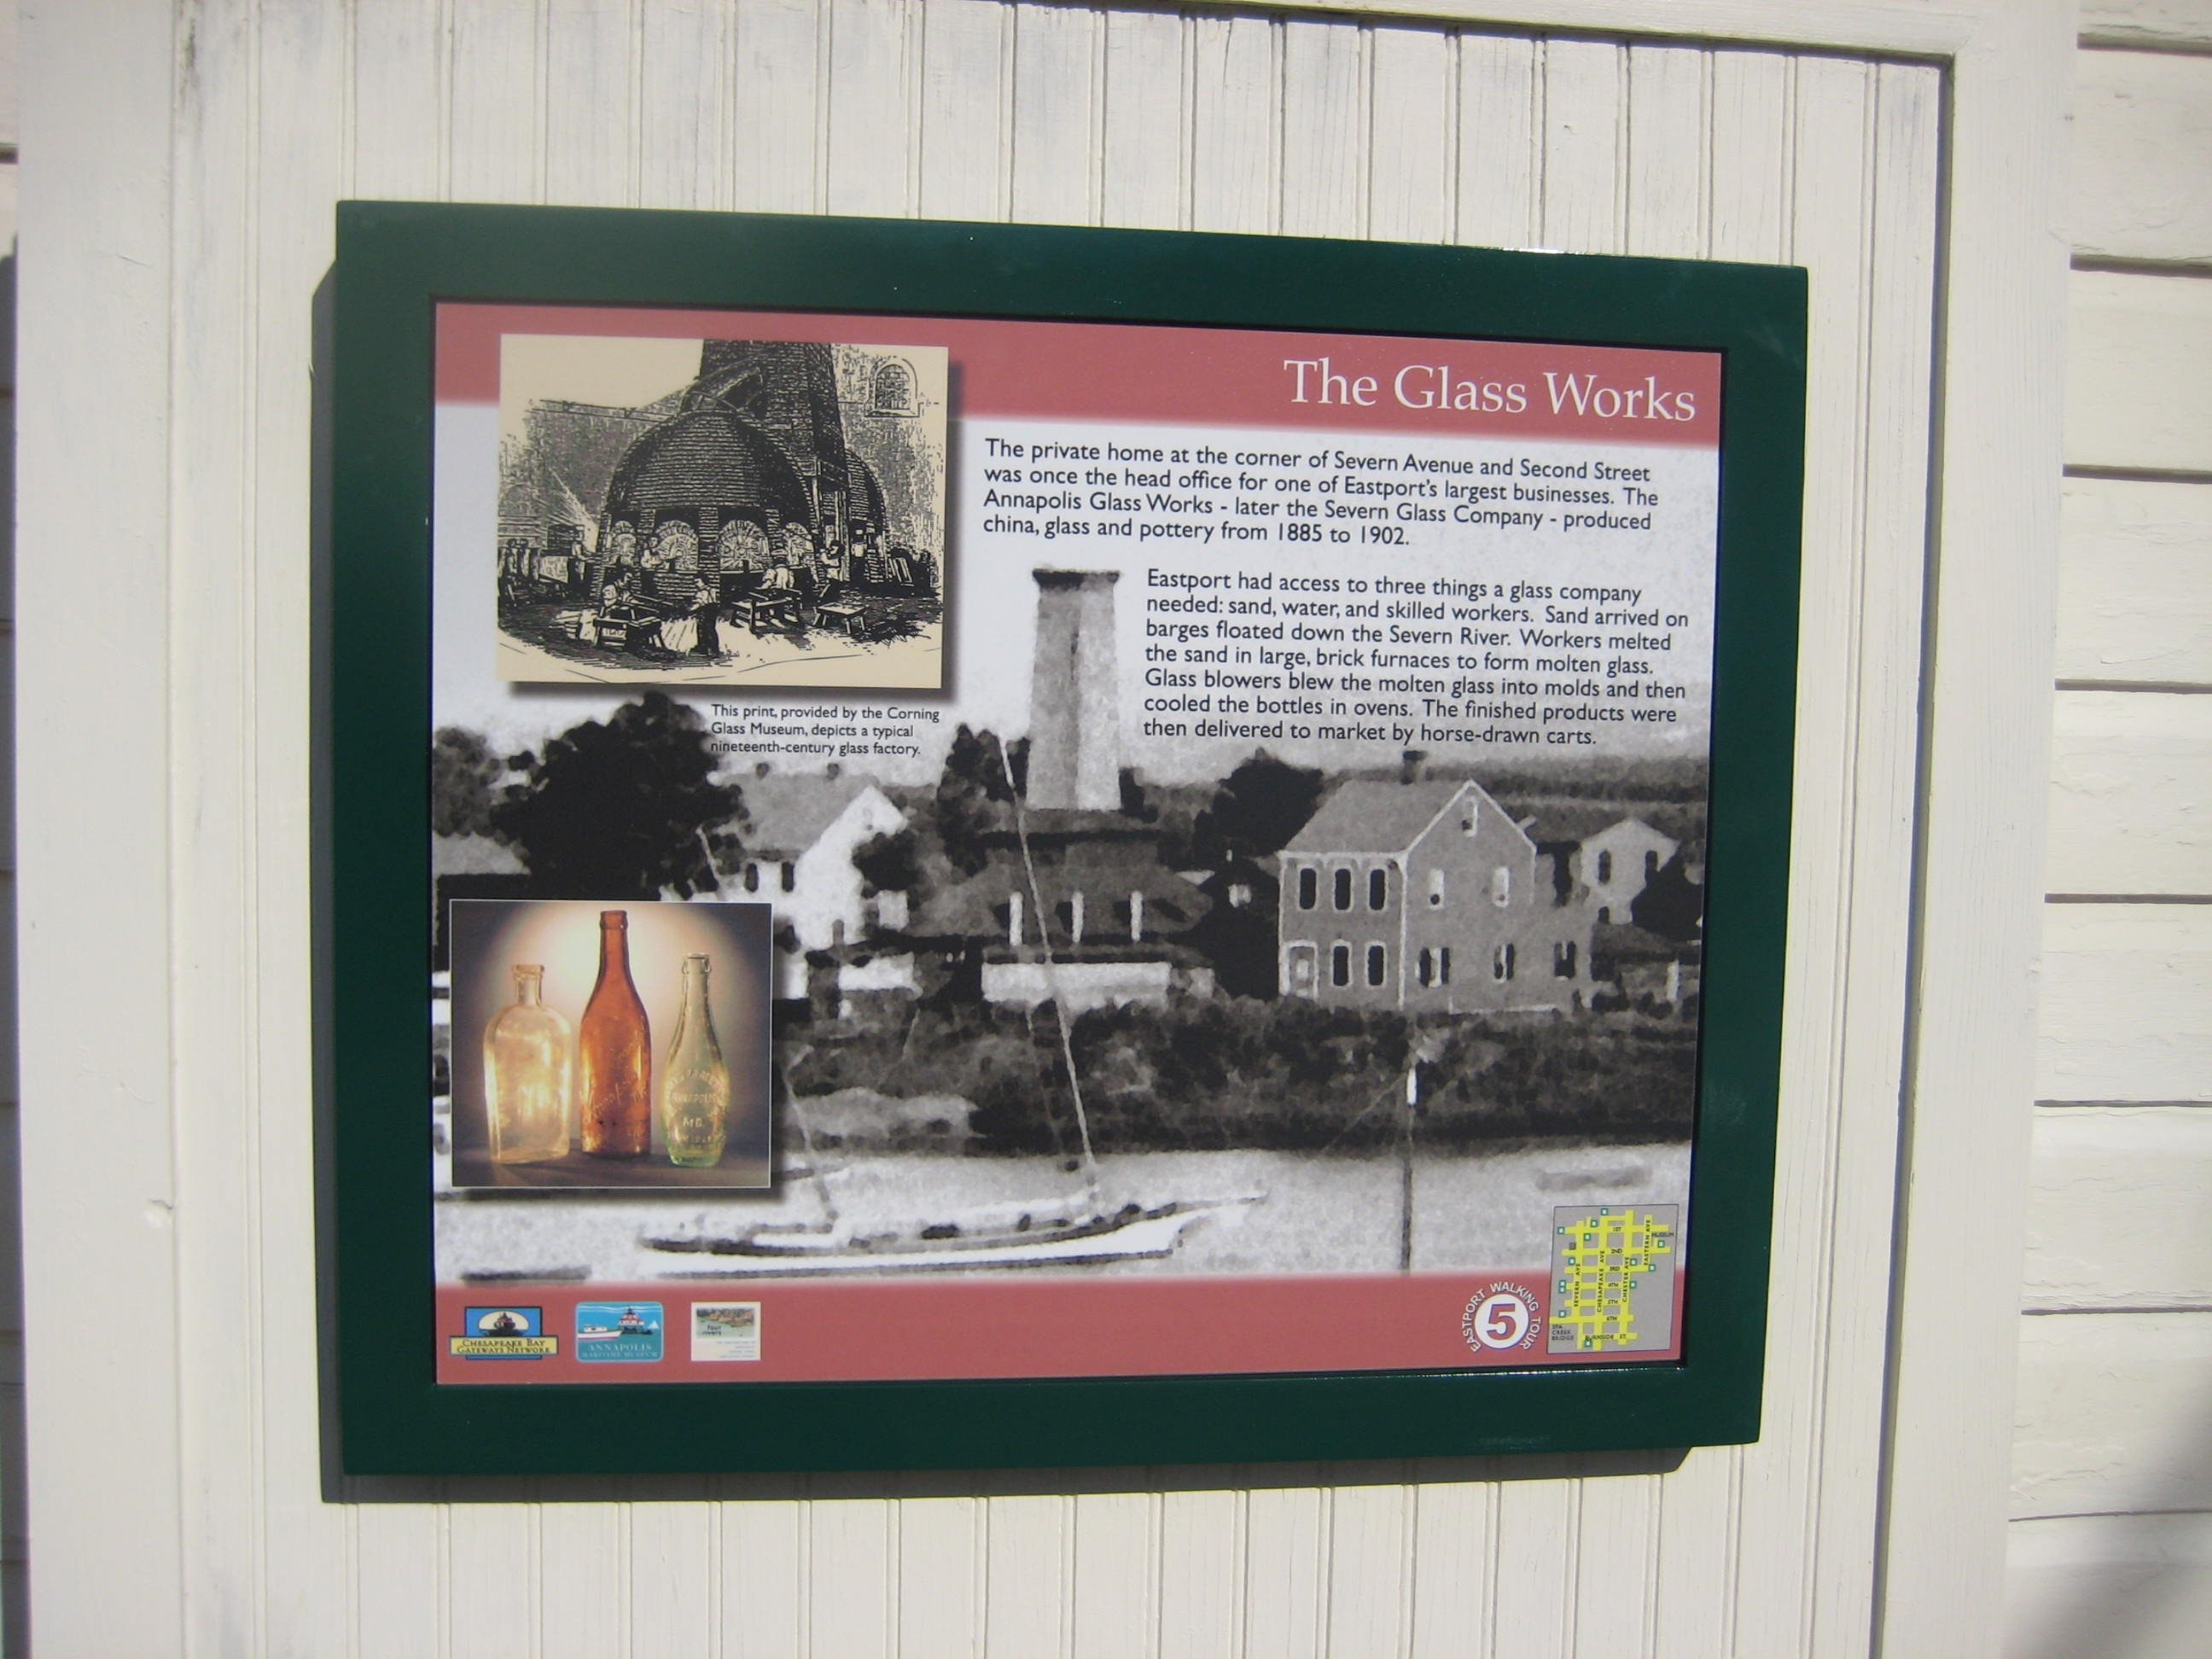 The Glass Works Marker